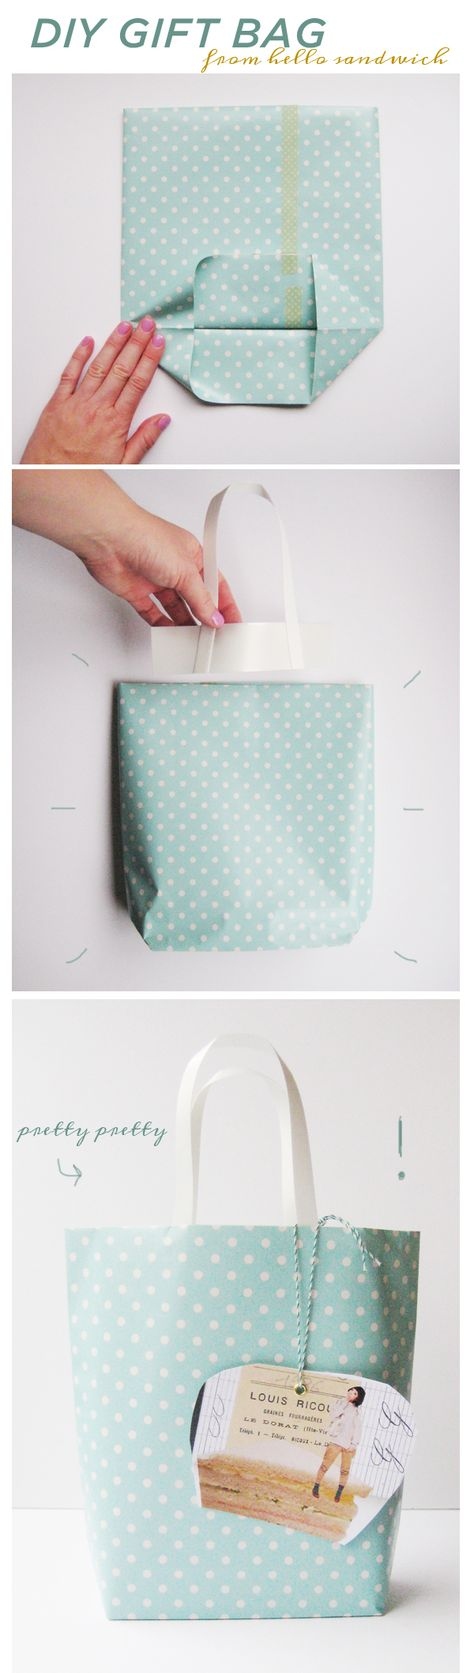 gift bag by hello sandwich.